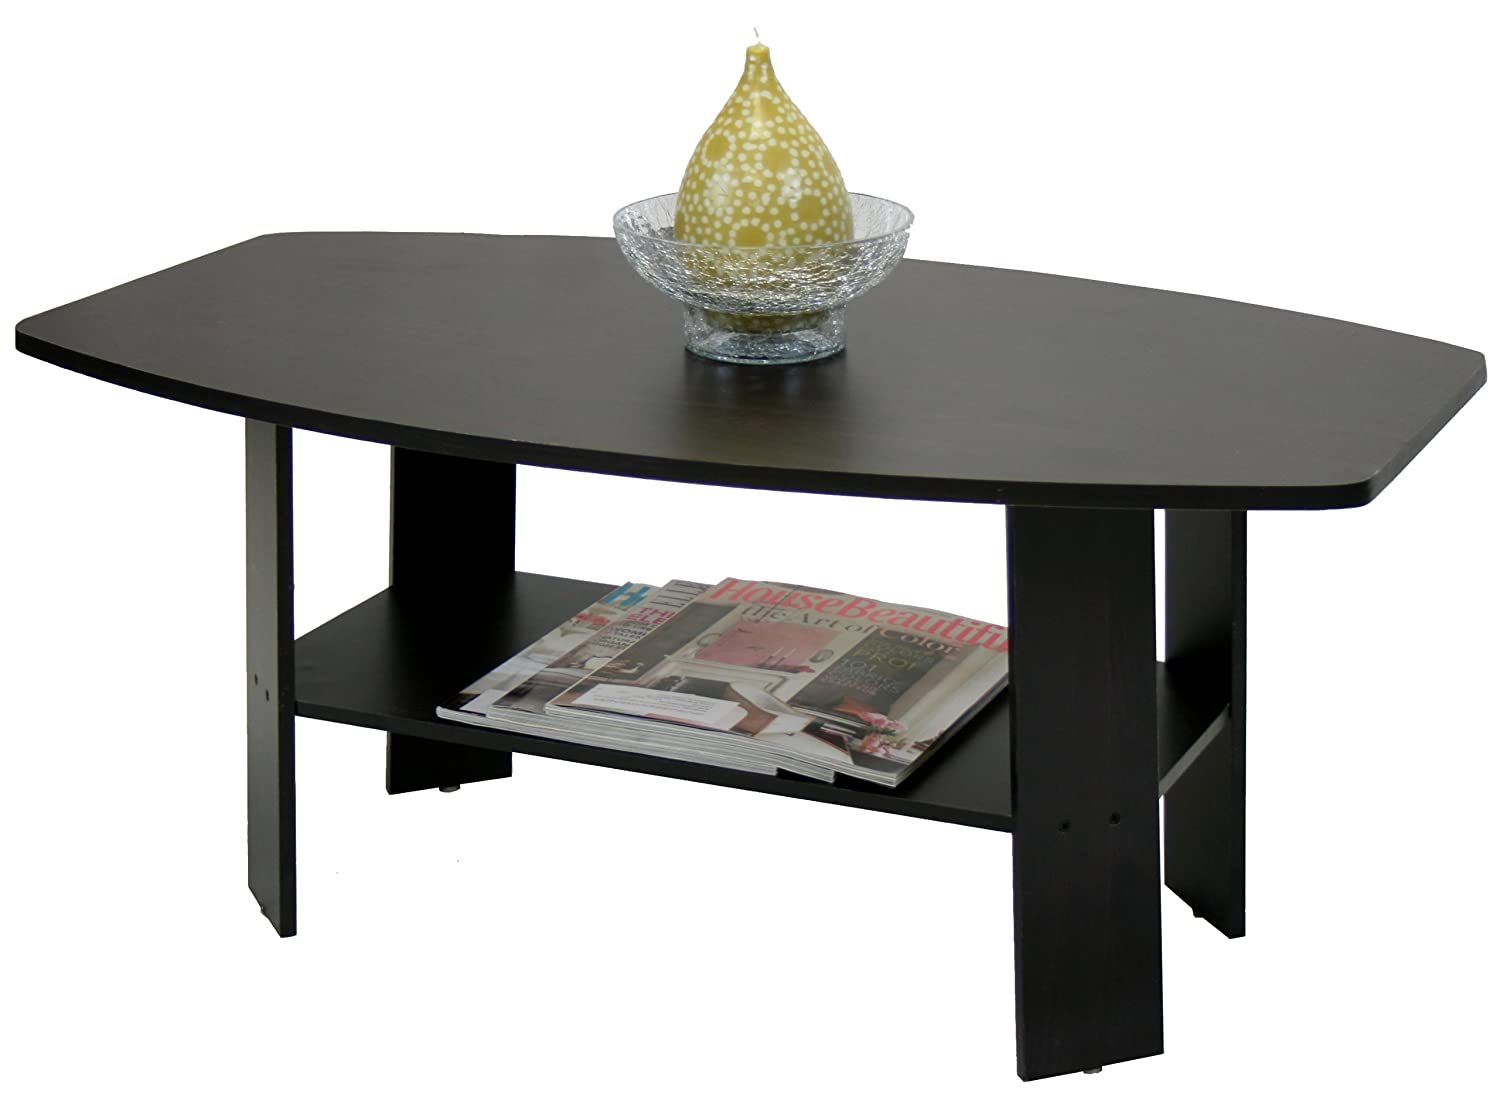 Small coffee table, best small coffee table reviews